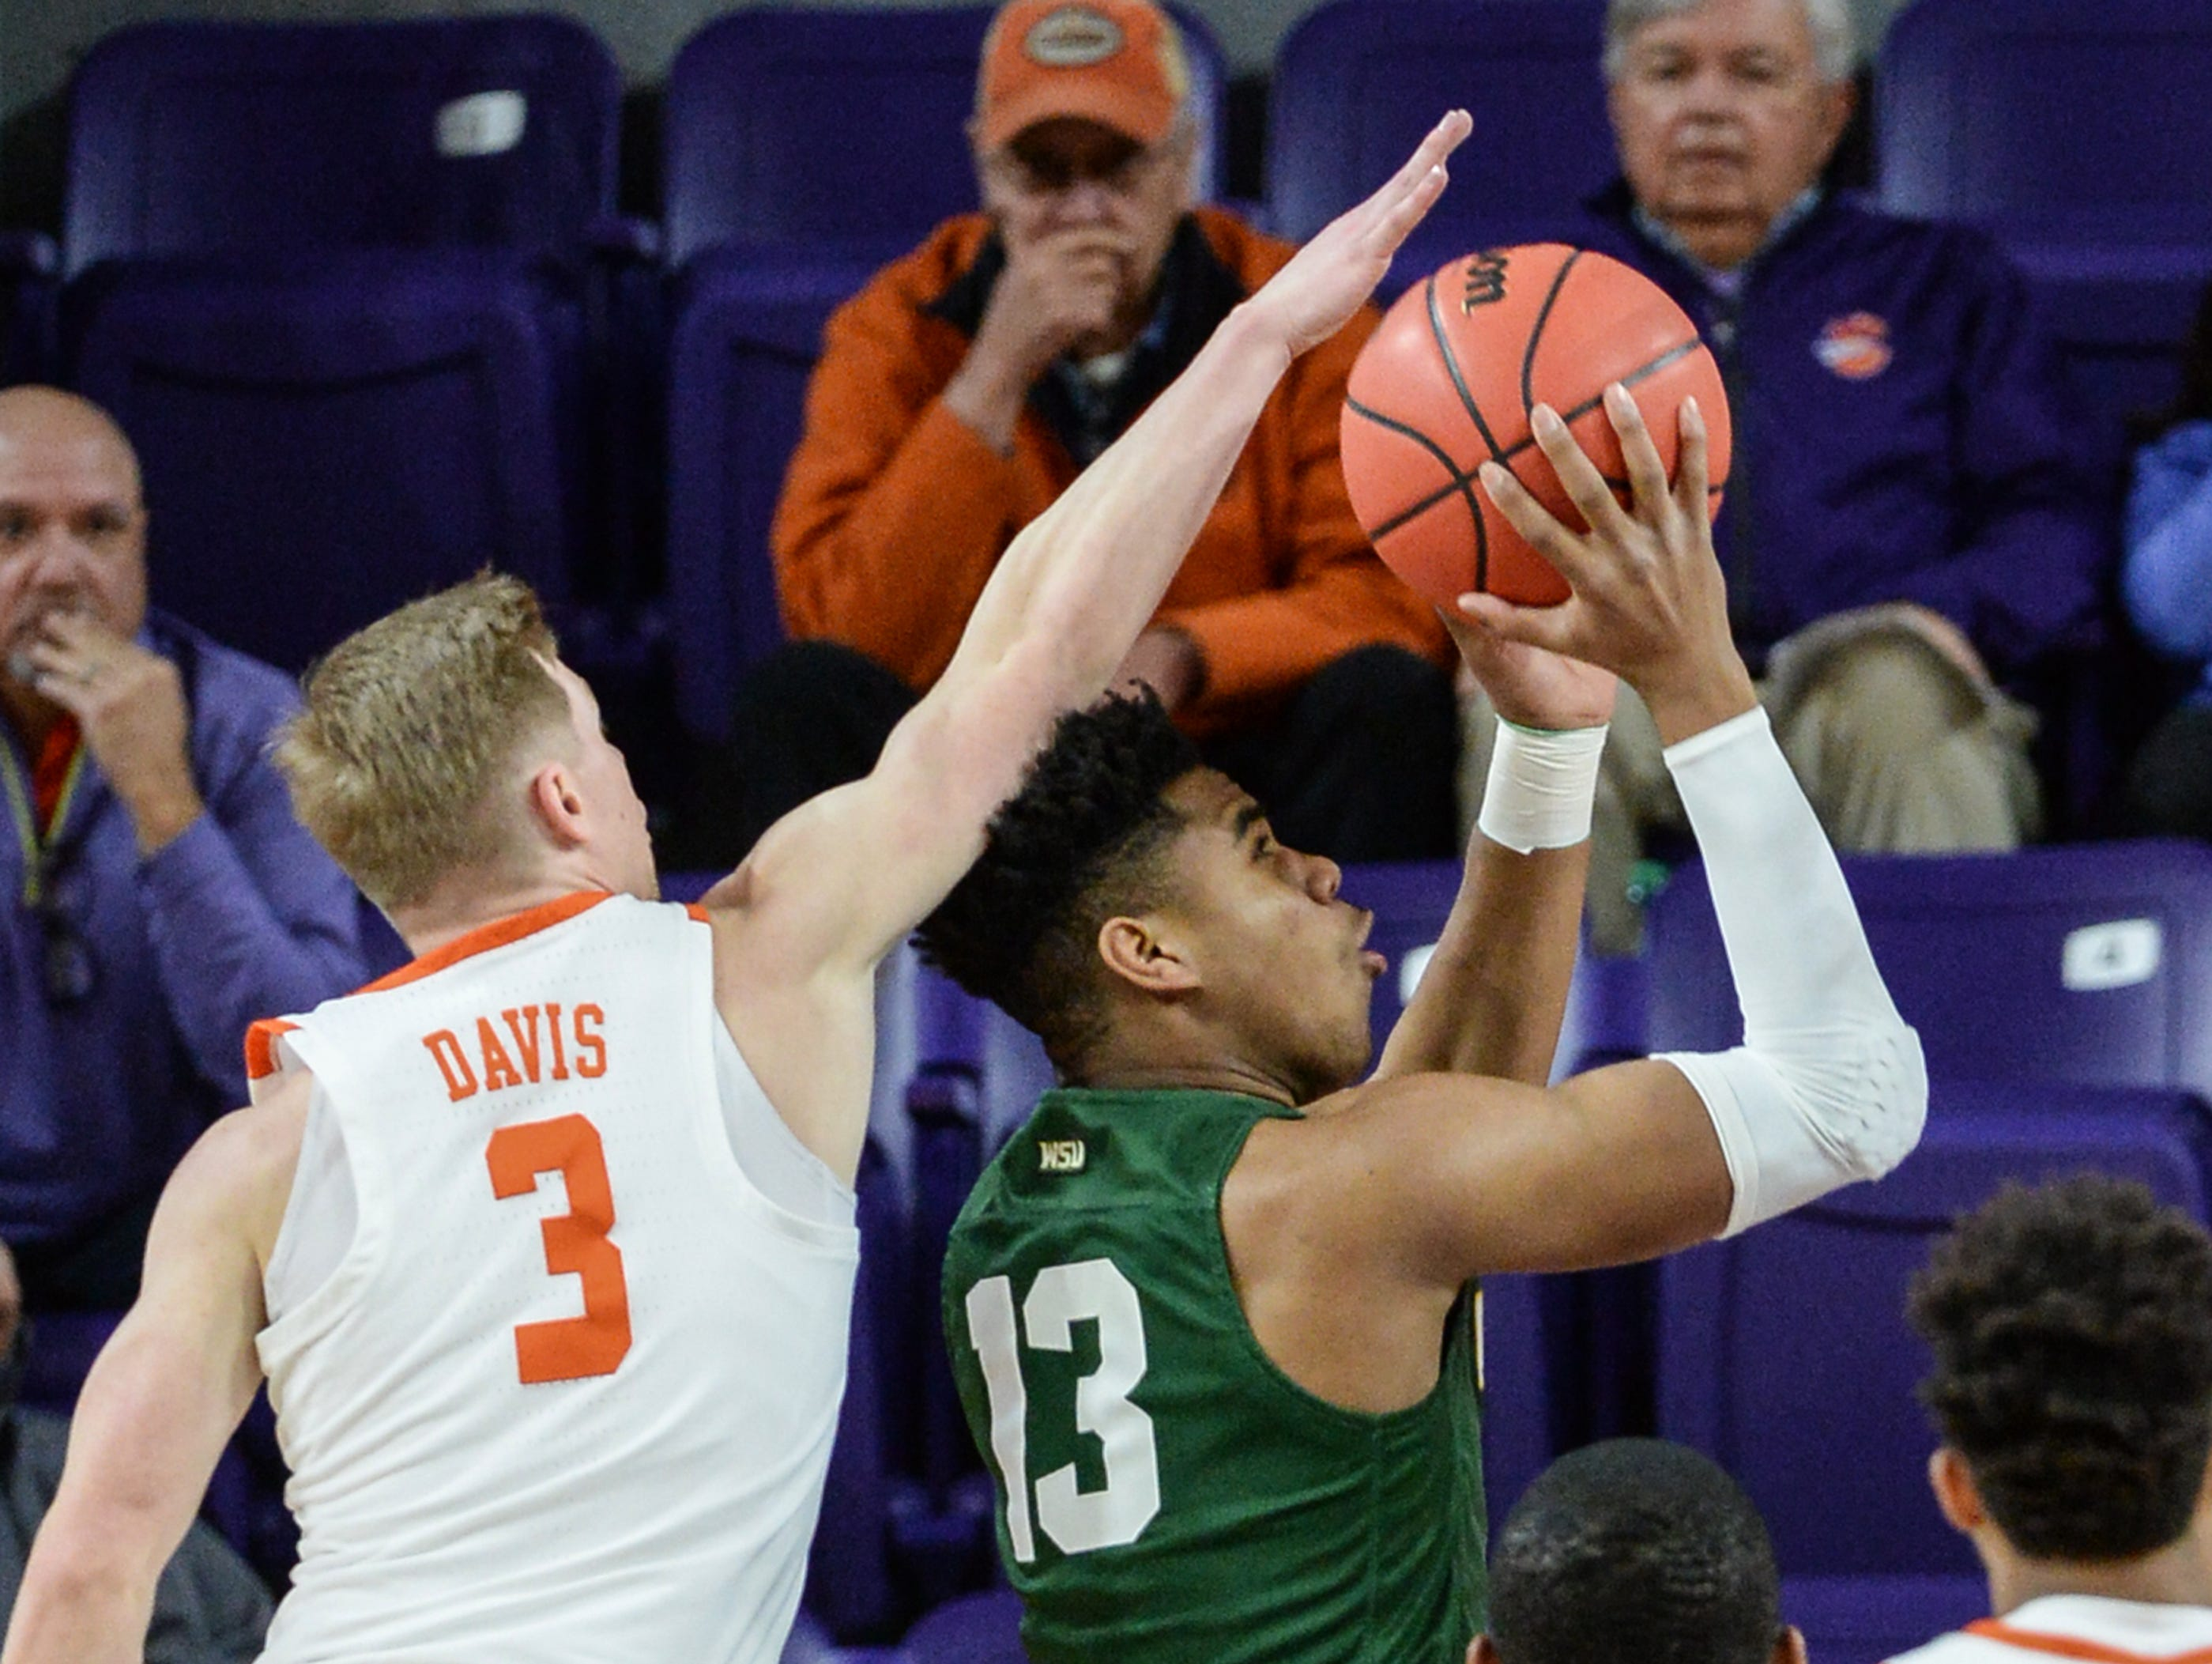 Clemson guard Lyles Davis (3) blocks a shot of Wright State guard Malachi Smith(13) during the first half of the NIT at Littlejohn Coliseum in Clemson Tuesday, March 19, 2019.